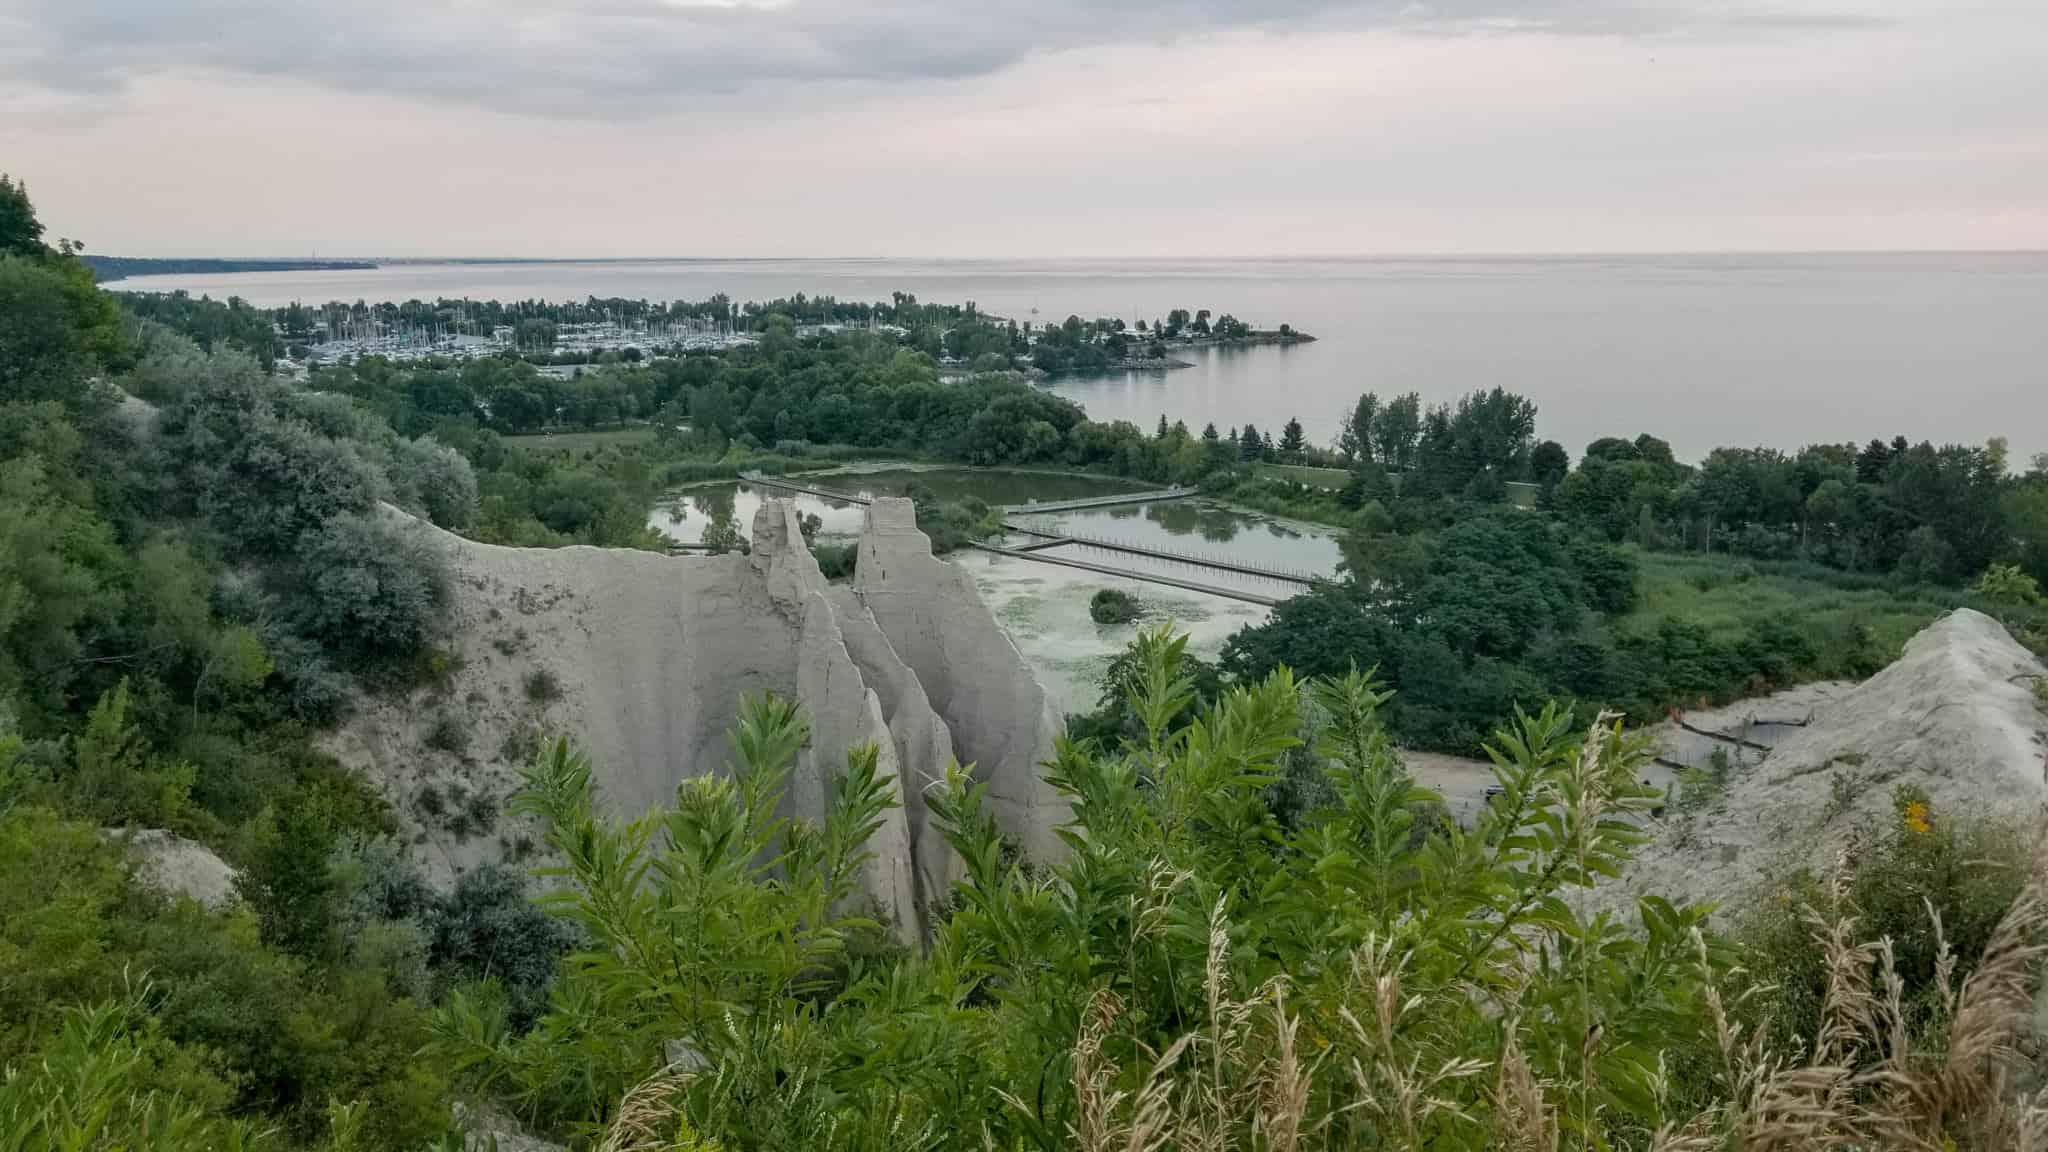 The ever stunning Scarborough Bluffs